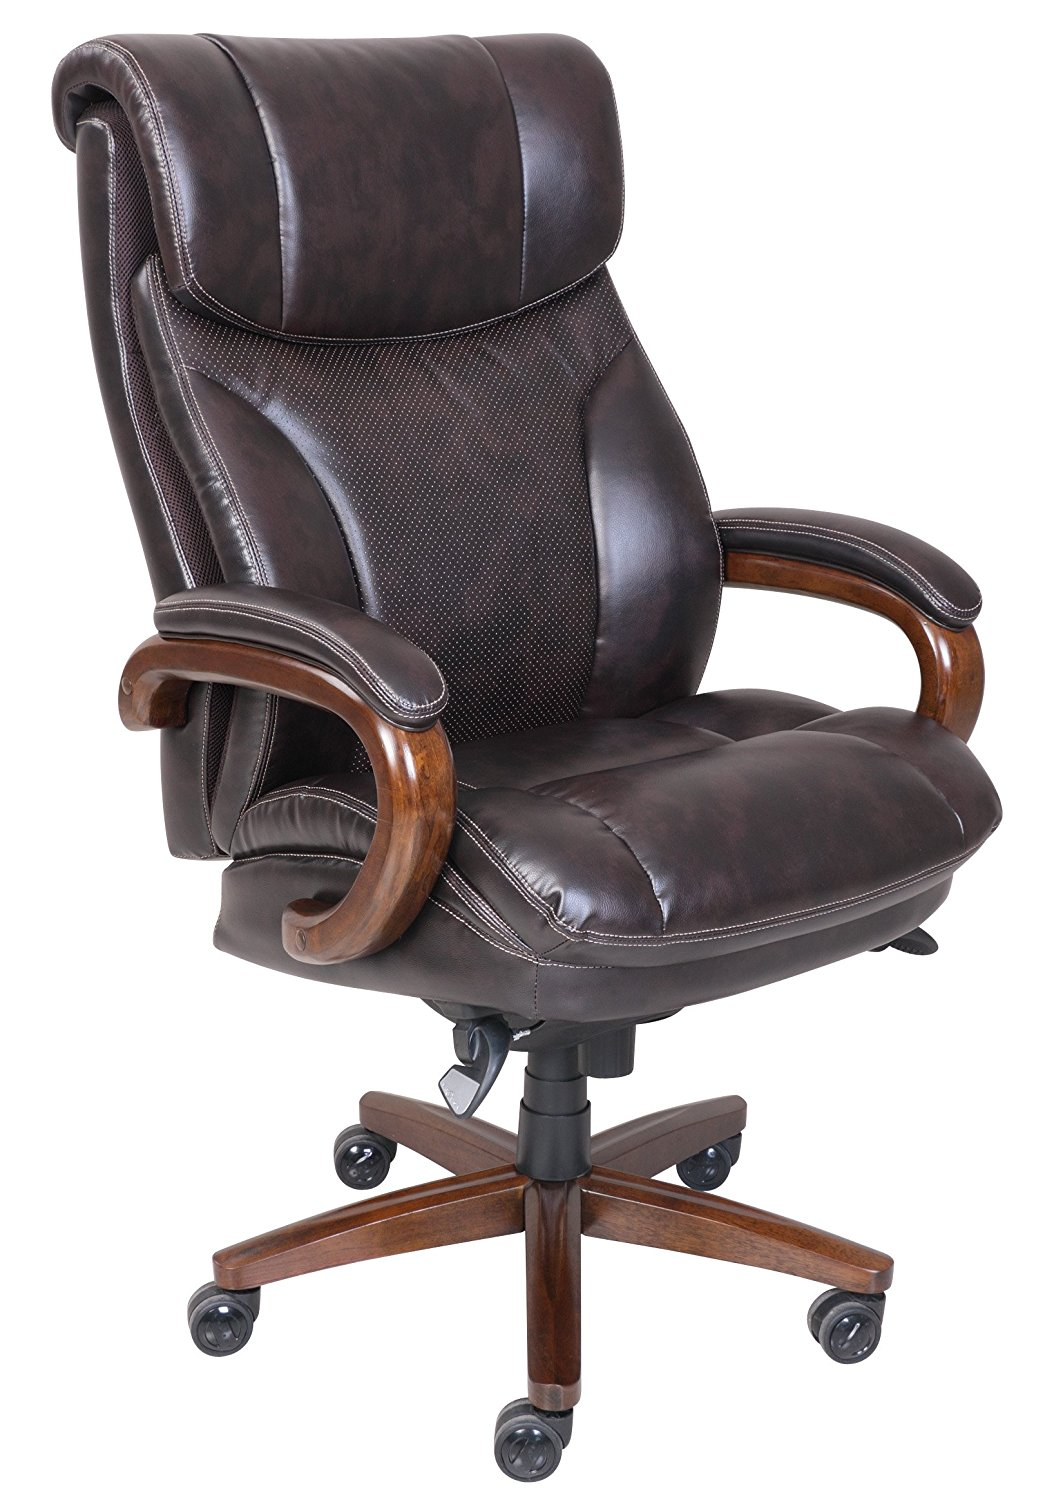 miramar executive leather la chair boy traditions comfortcore z office chairs voyager